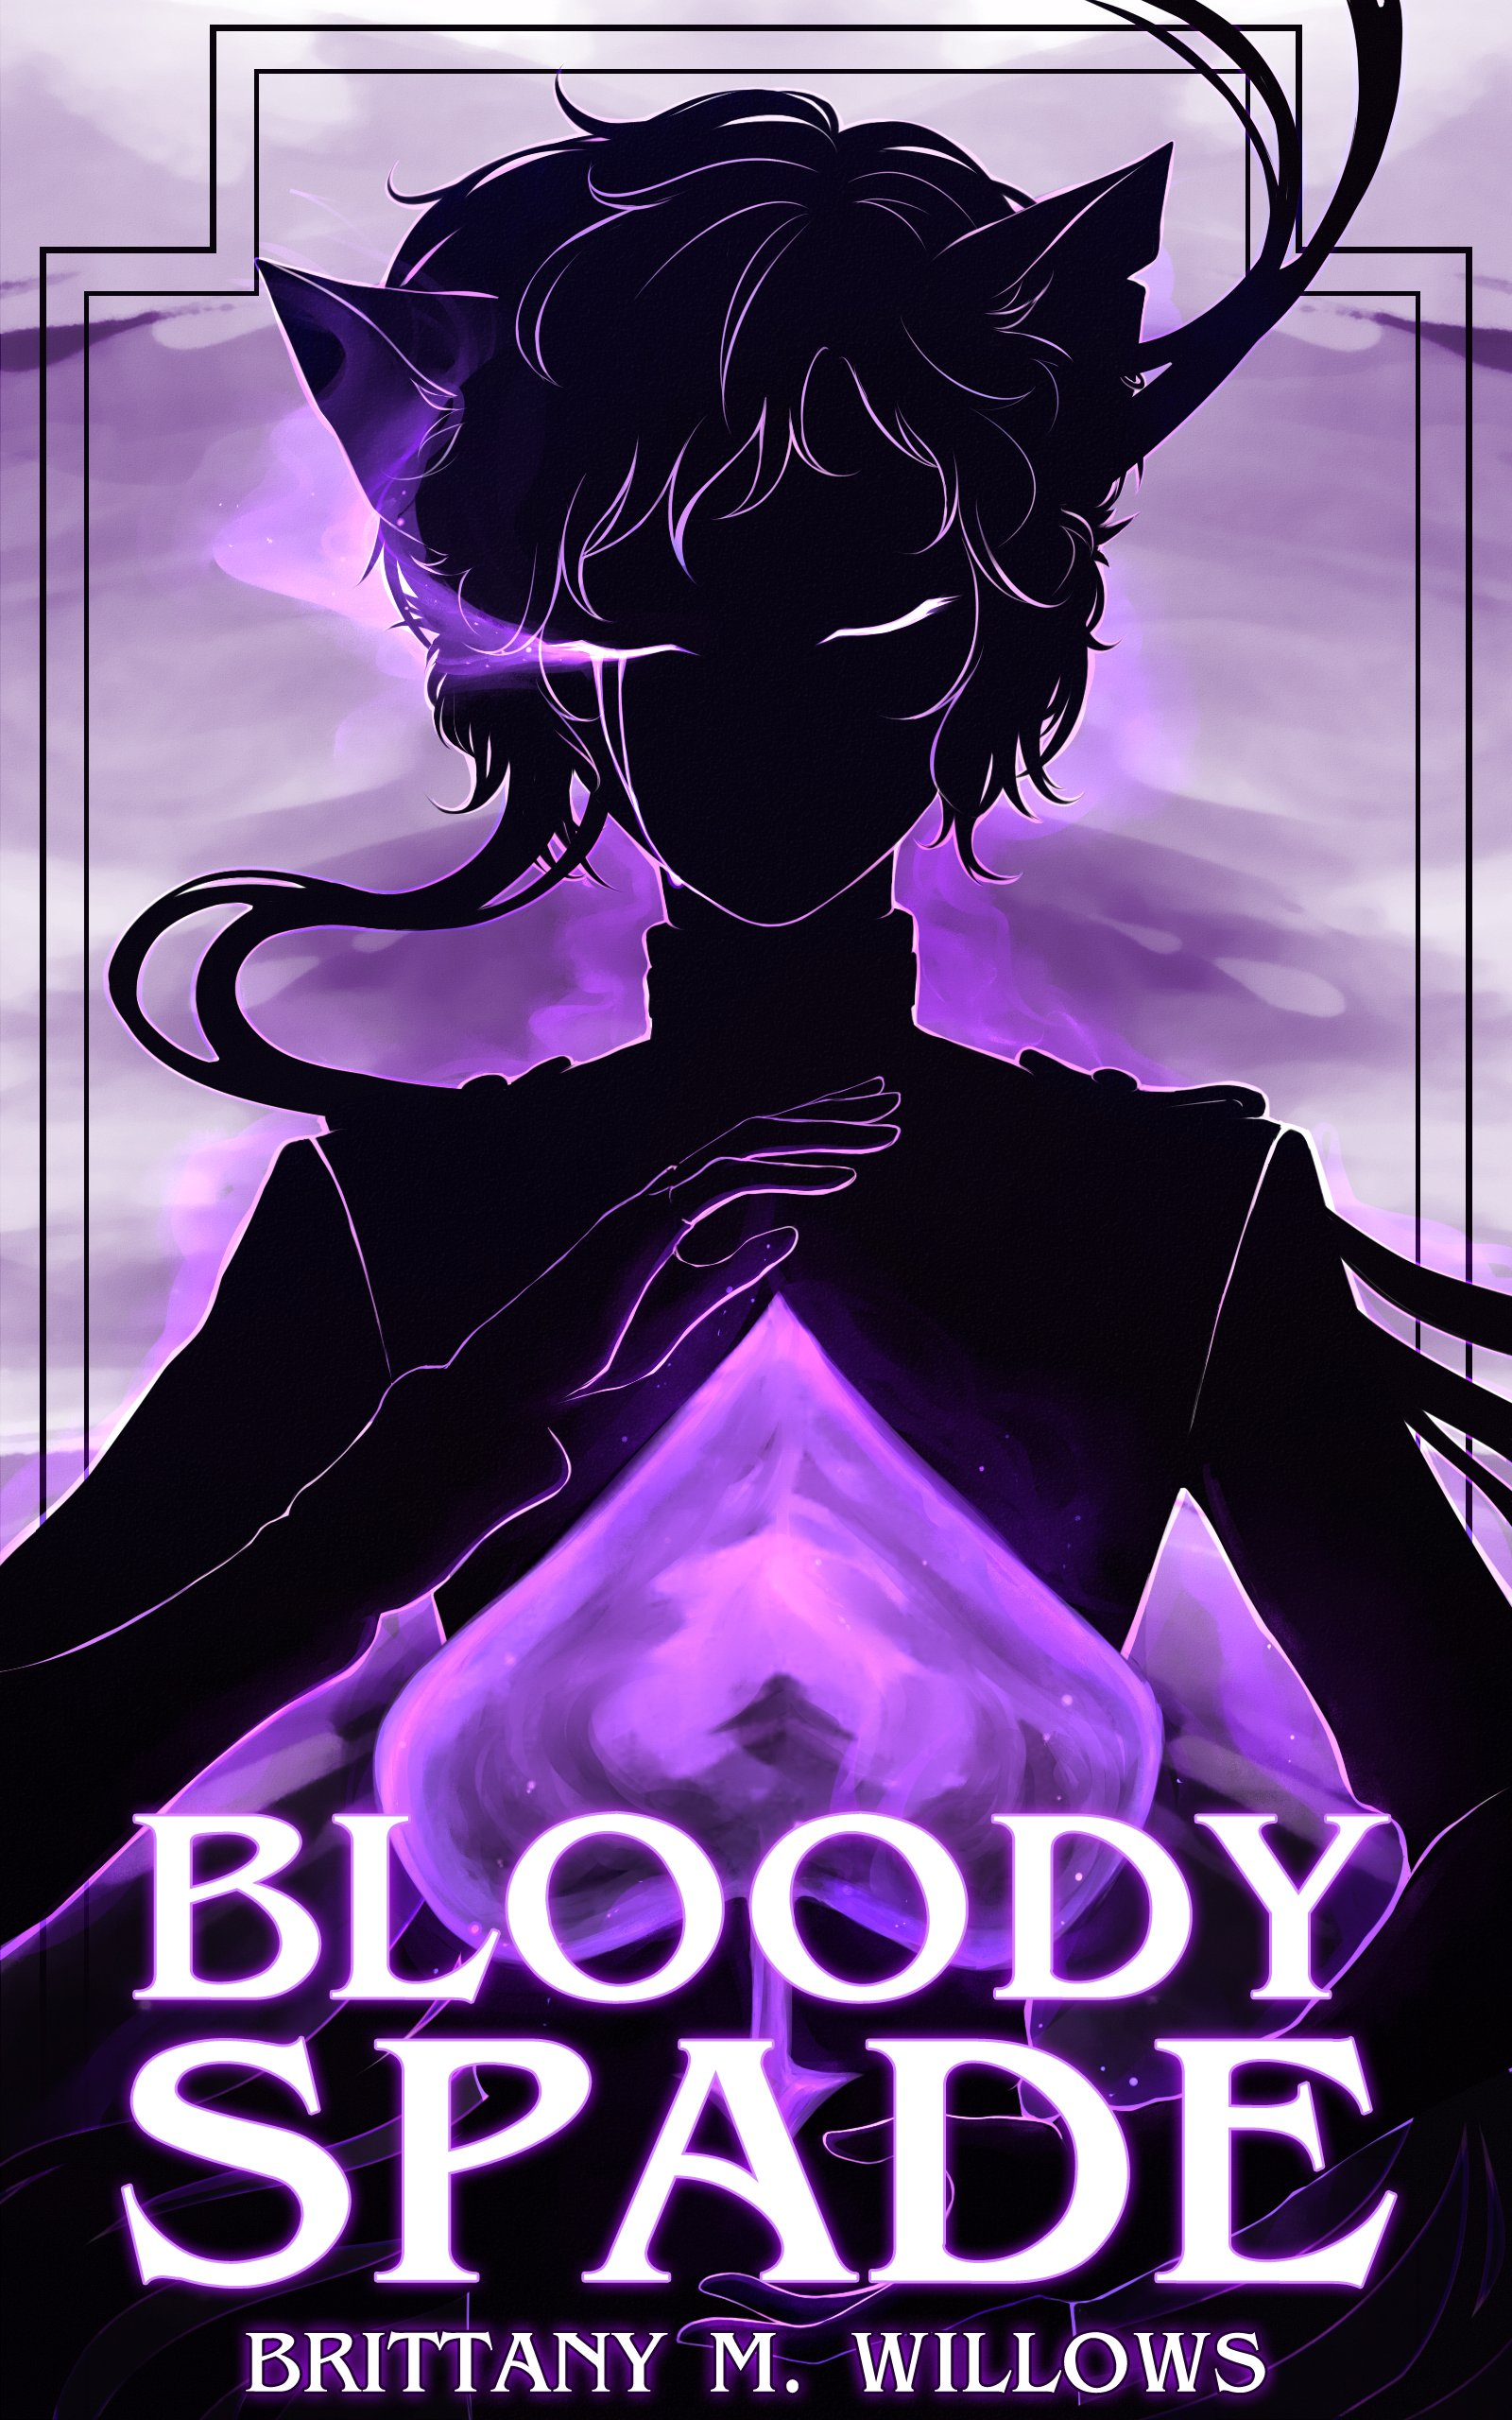 Bloody Spade Book Cover.